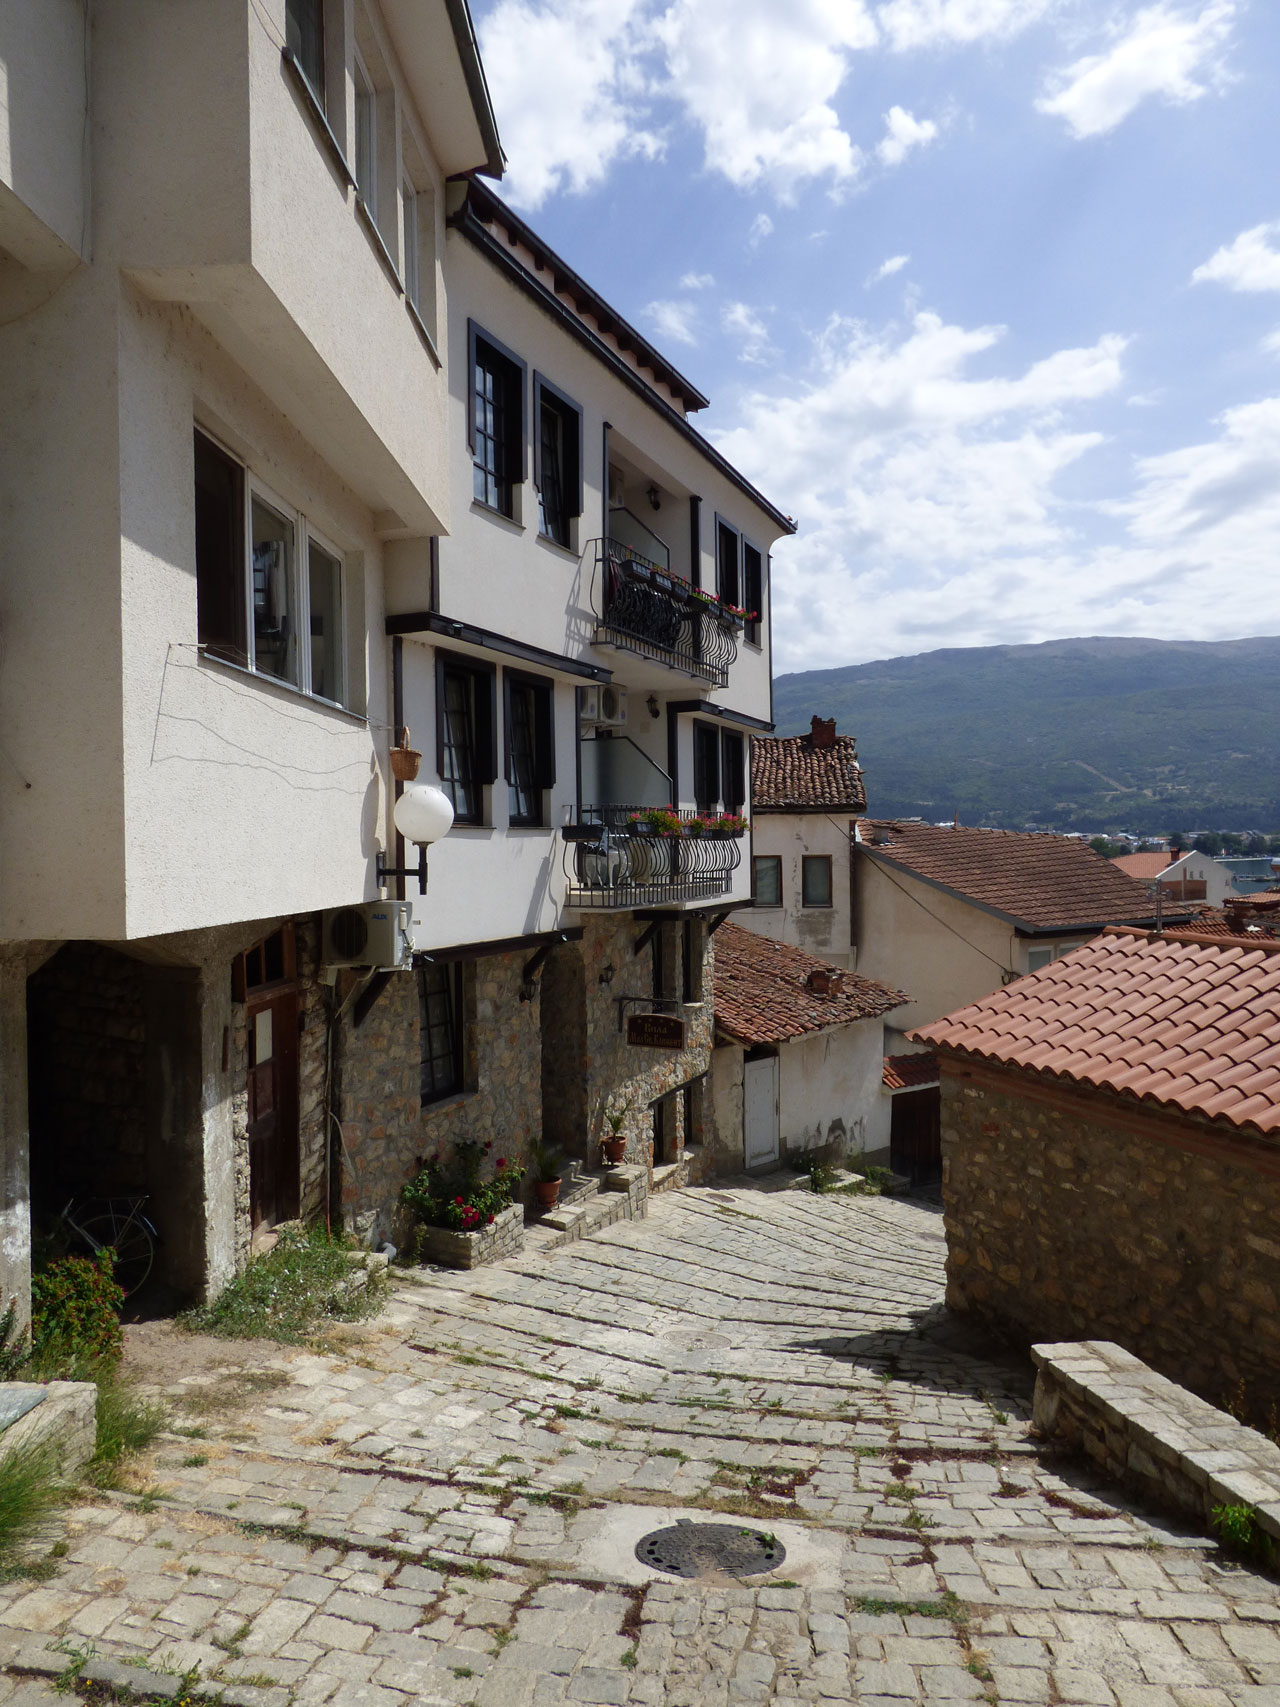 Street in Ohrid old town, Macedonia